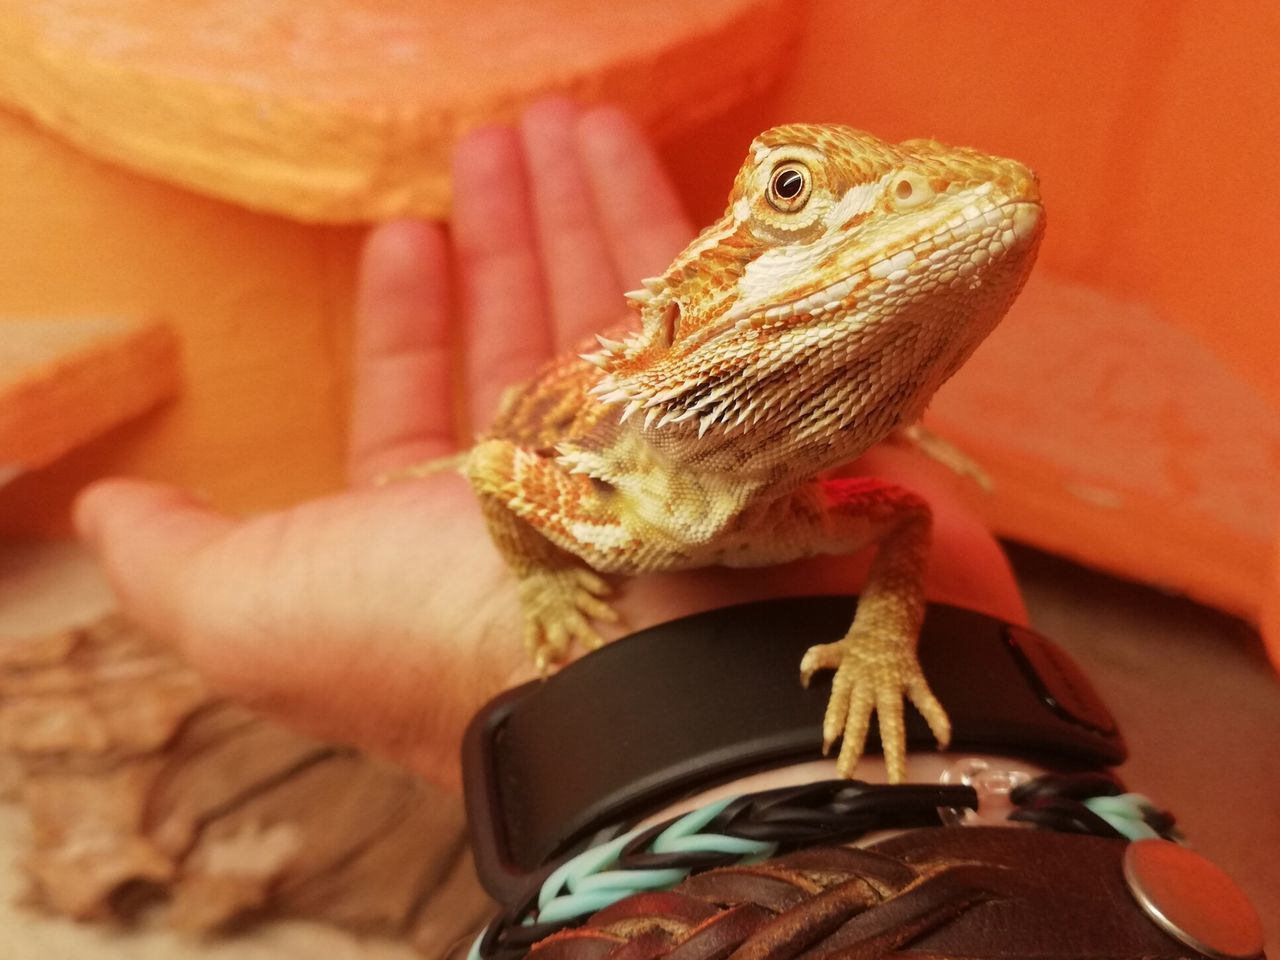 one animal, vertebrate, animal wildlife, one person, reptile, human hand, lizard, hand, human body part, animals in the wild, real people, holding, close-up, unrecognizable person, lifestyles, pets, finger, body part, animal scale